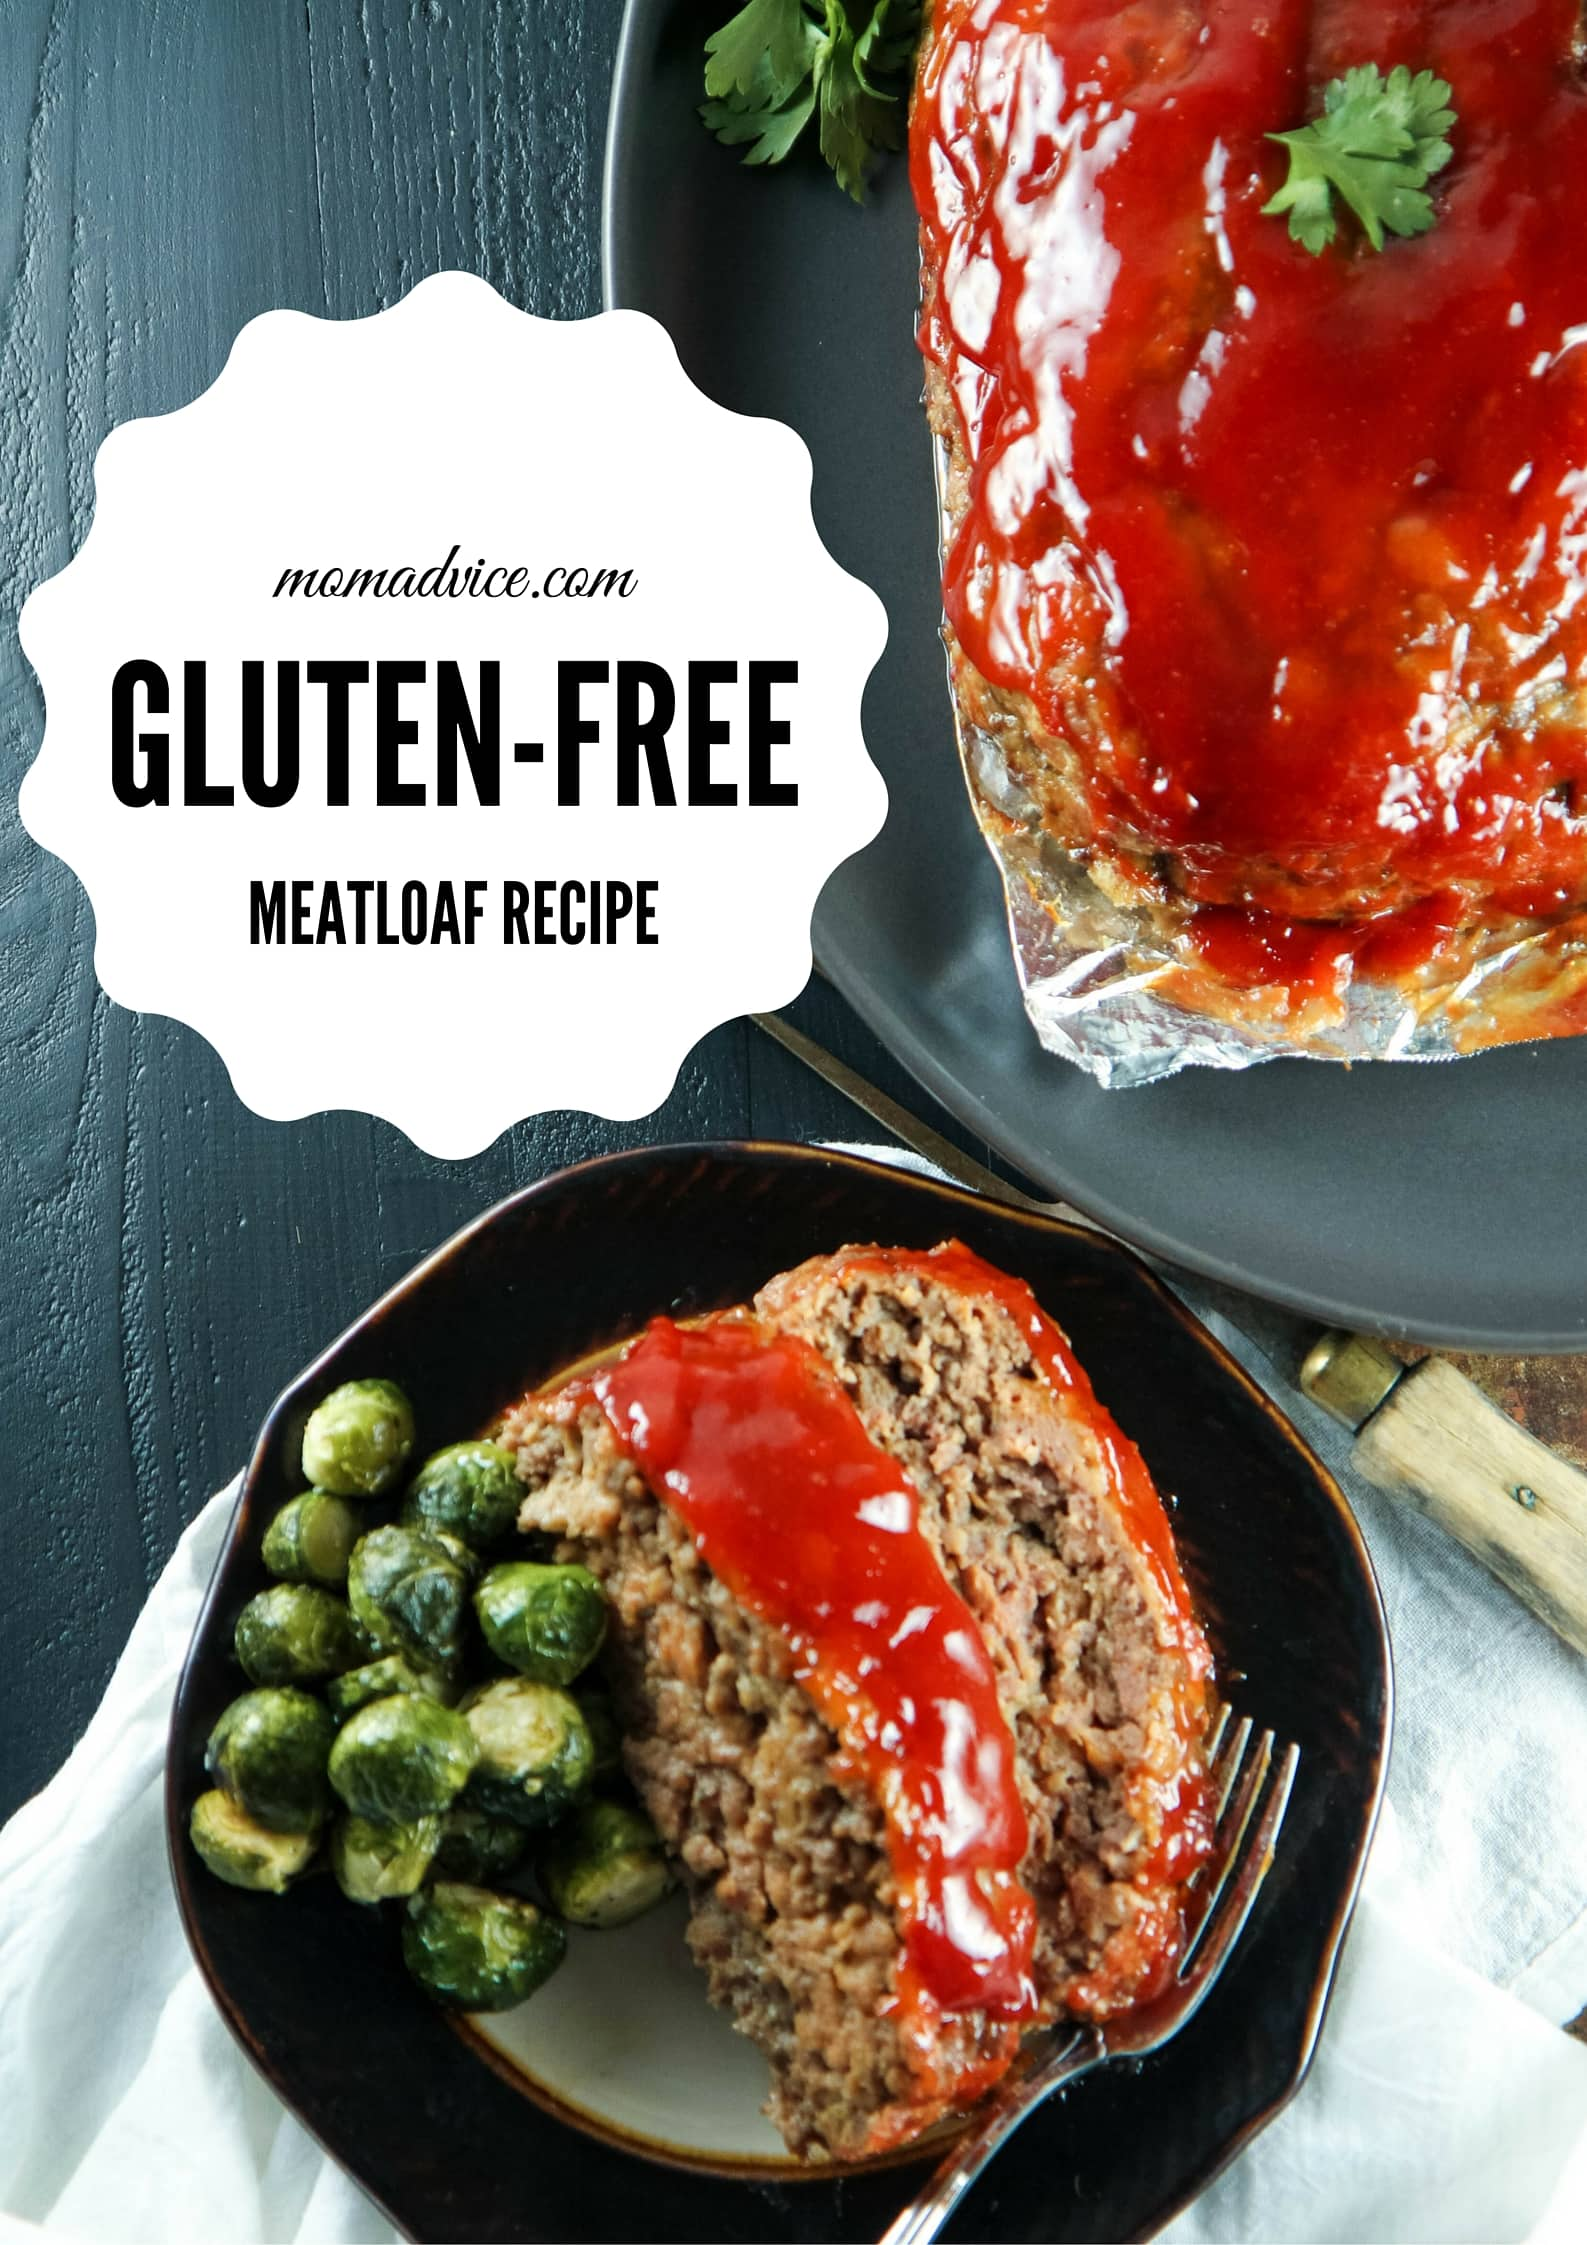 gluten-free meatloaf recipe